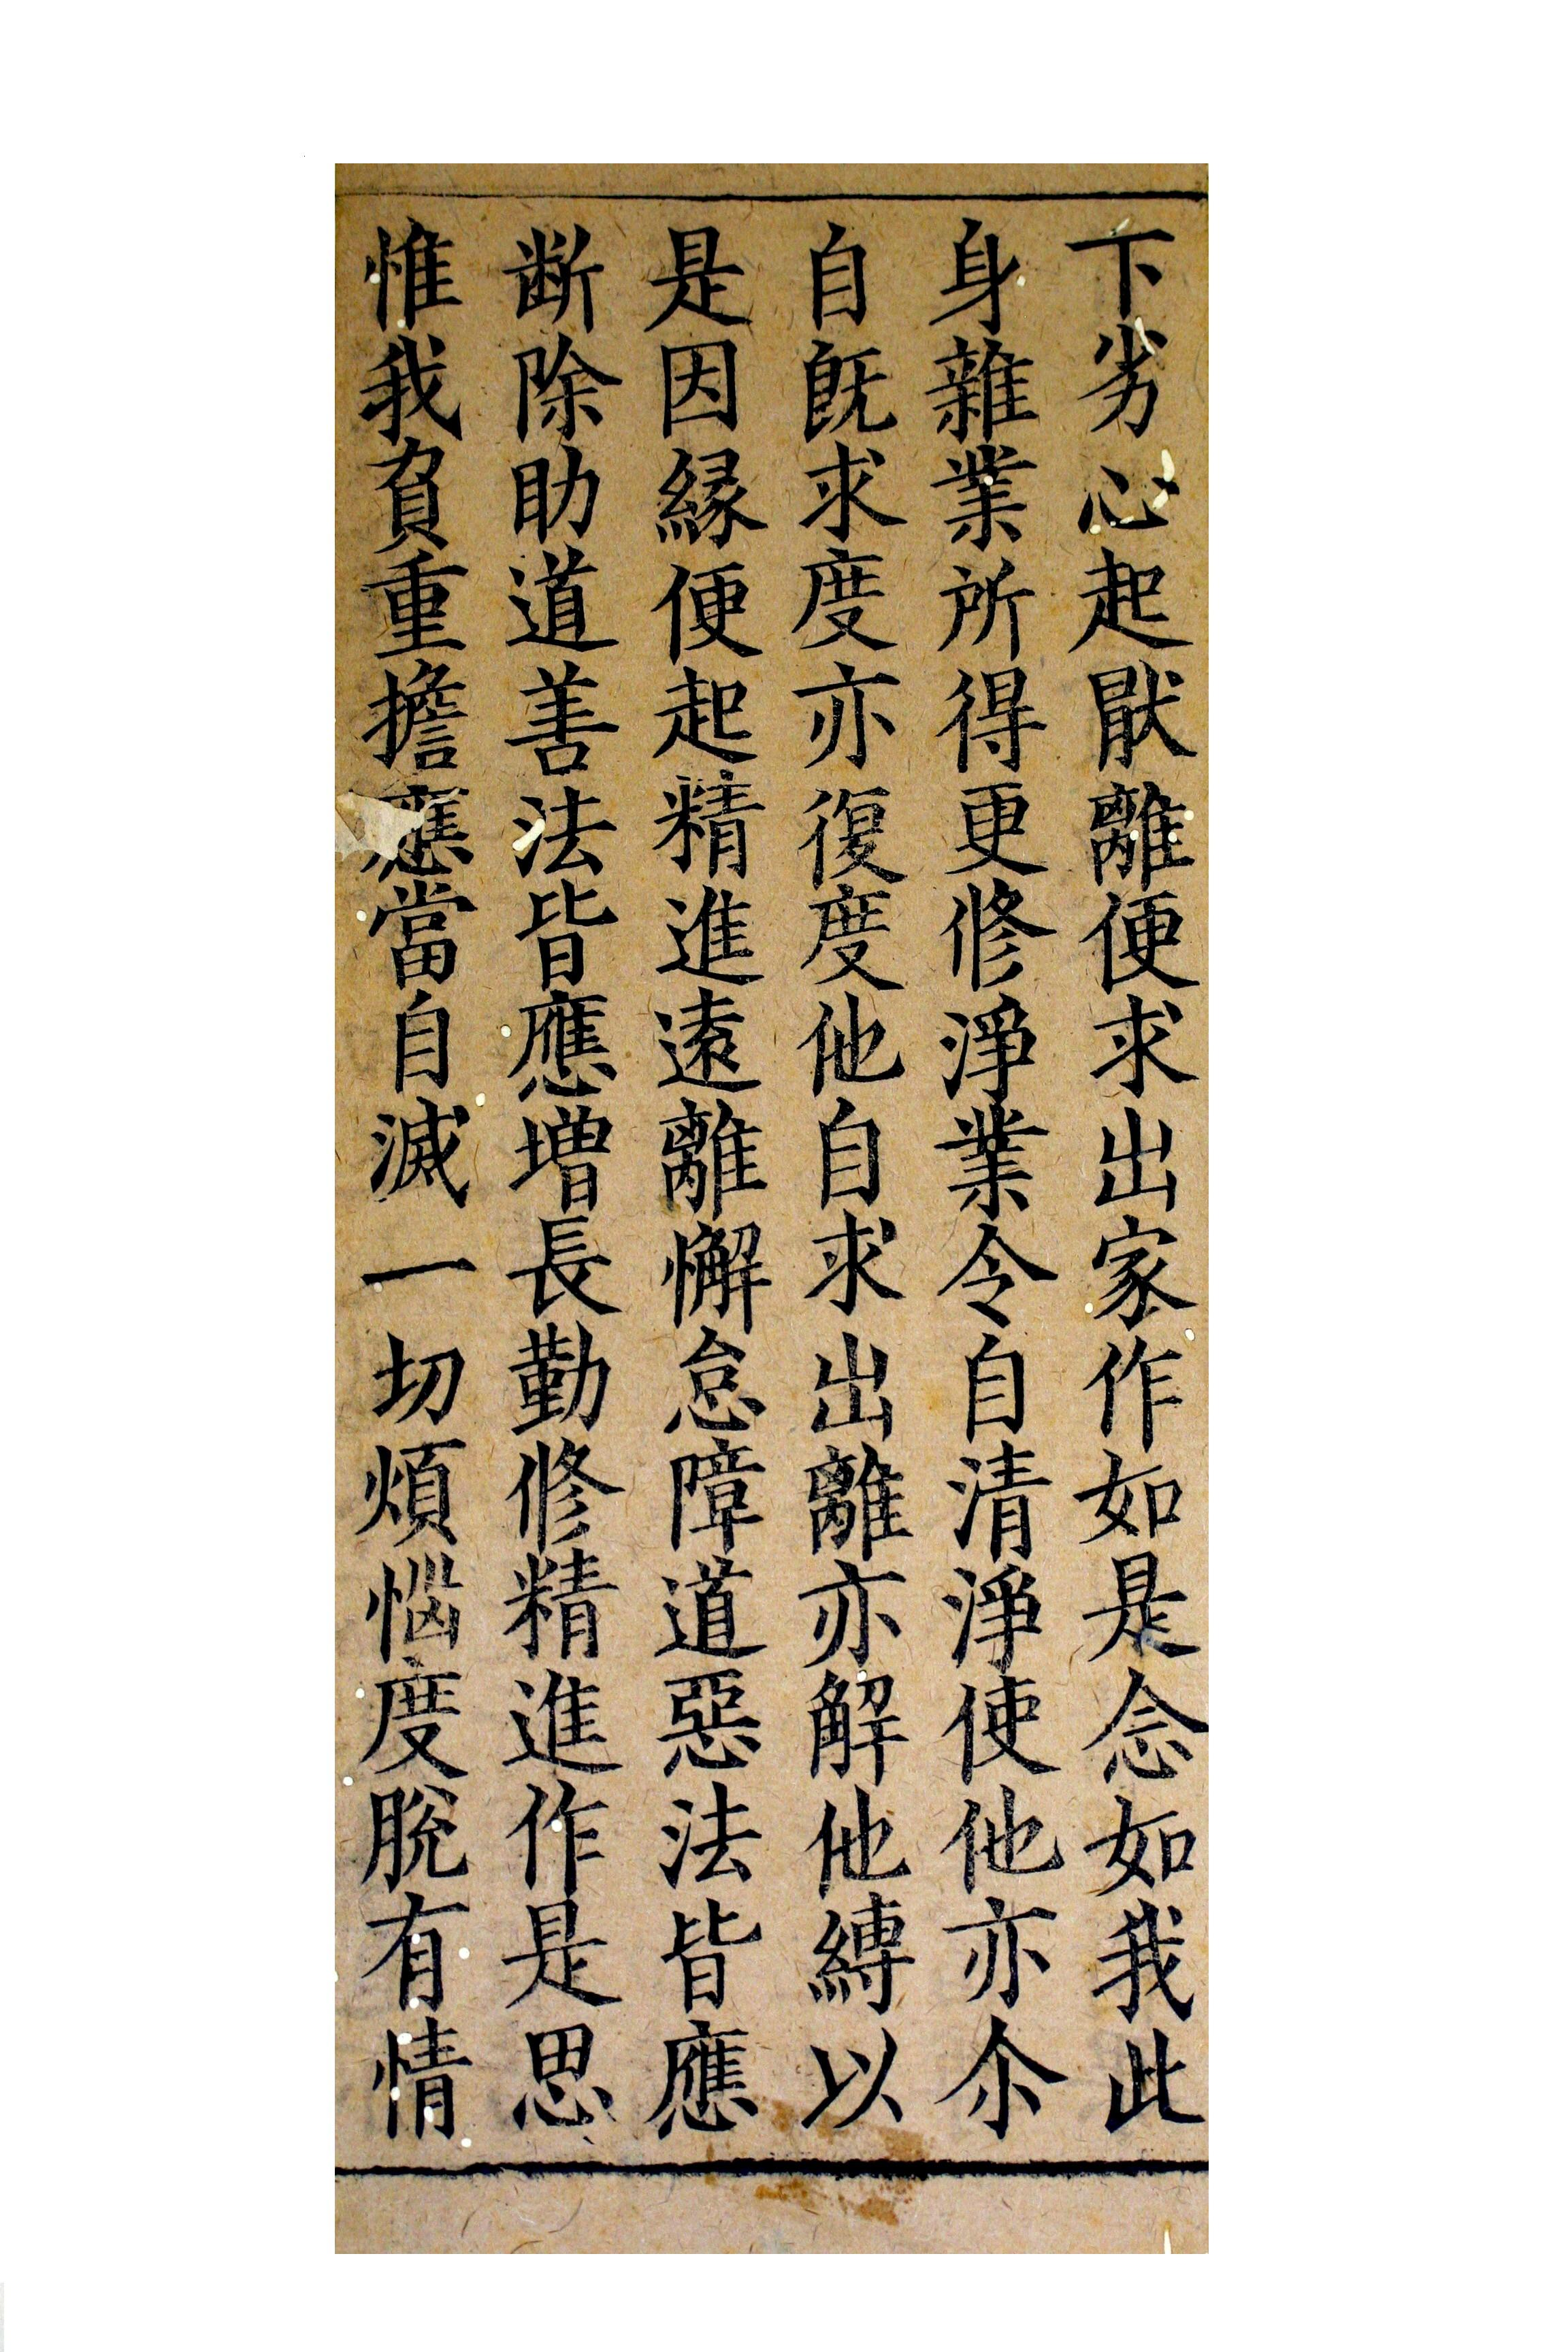 essay lotus sutra Short essay on climate change and global warming essay oliver: november 22, 2017 my goals for today are to finish my english essay and to not have to put pants on at.